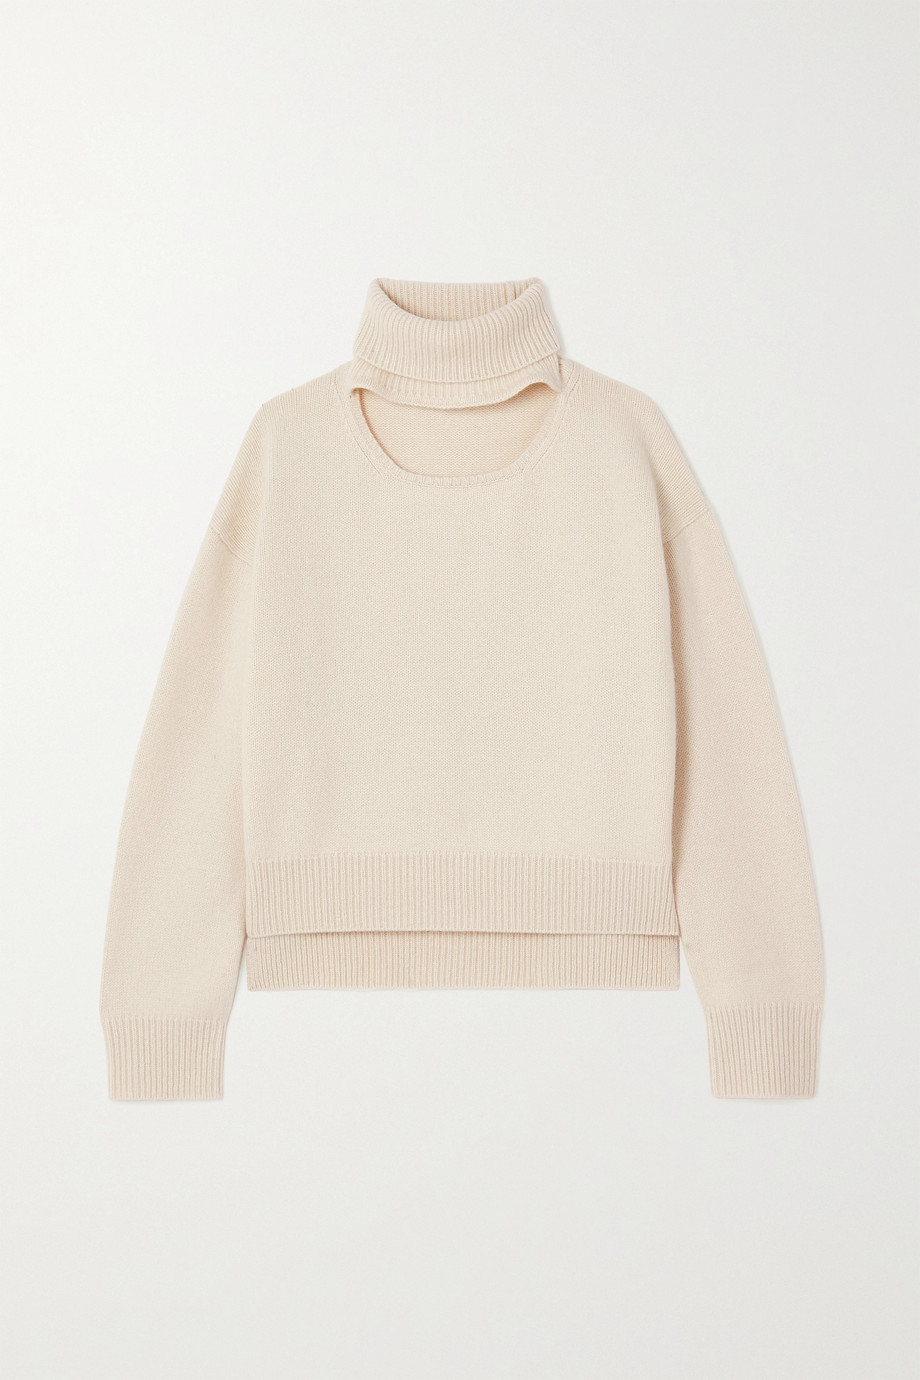 REJINA PYO Peyton cutout cashmere and wool-blend turtleneck sweater